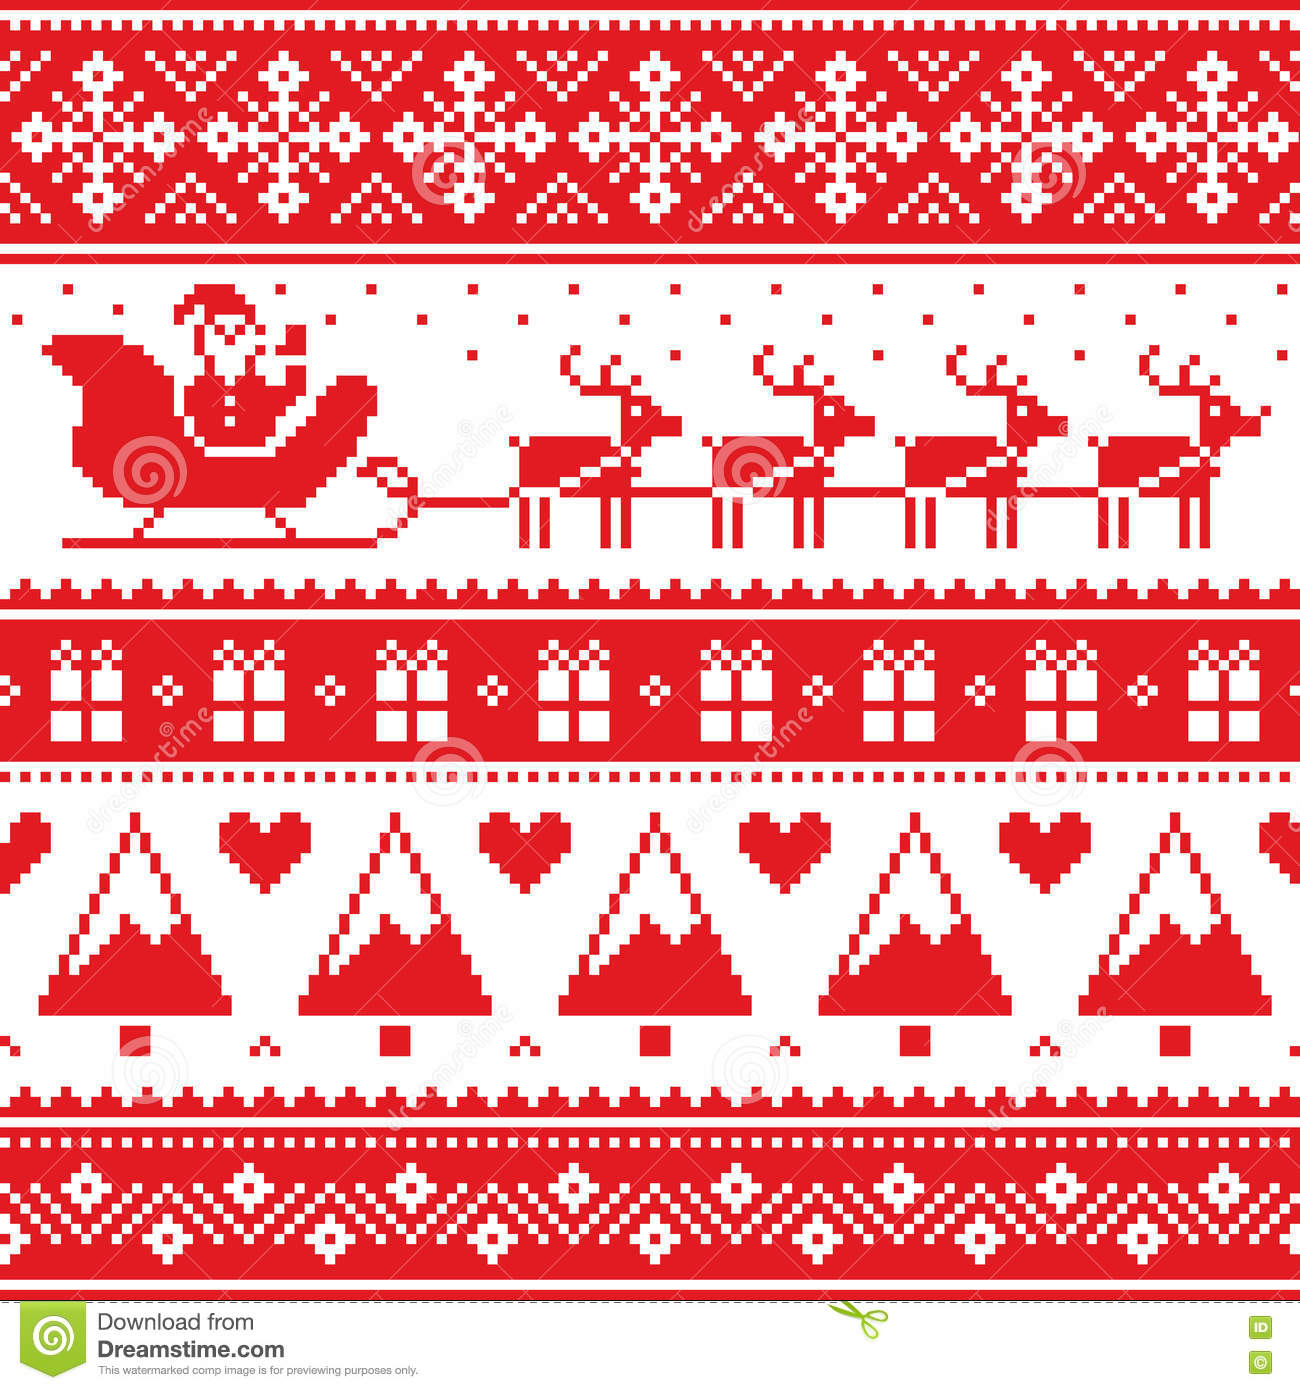 13407a97f2be Christmas jumper or sweater seamless red pattern with Santa and reindeer